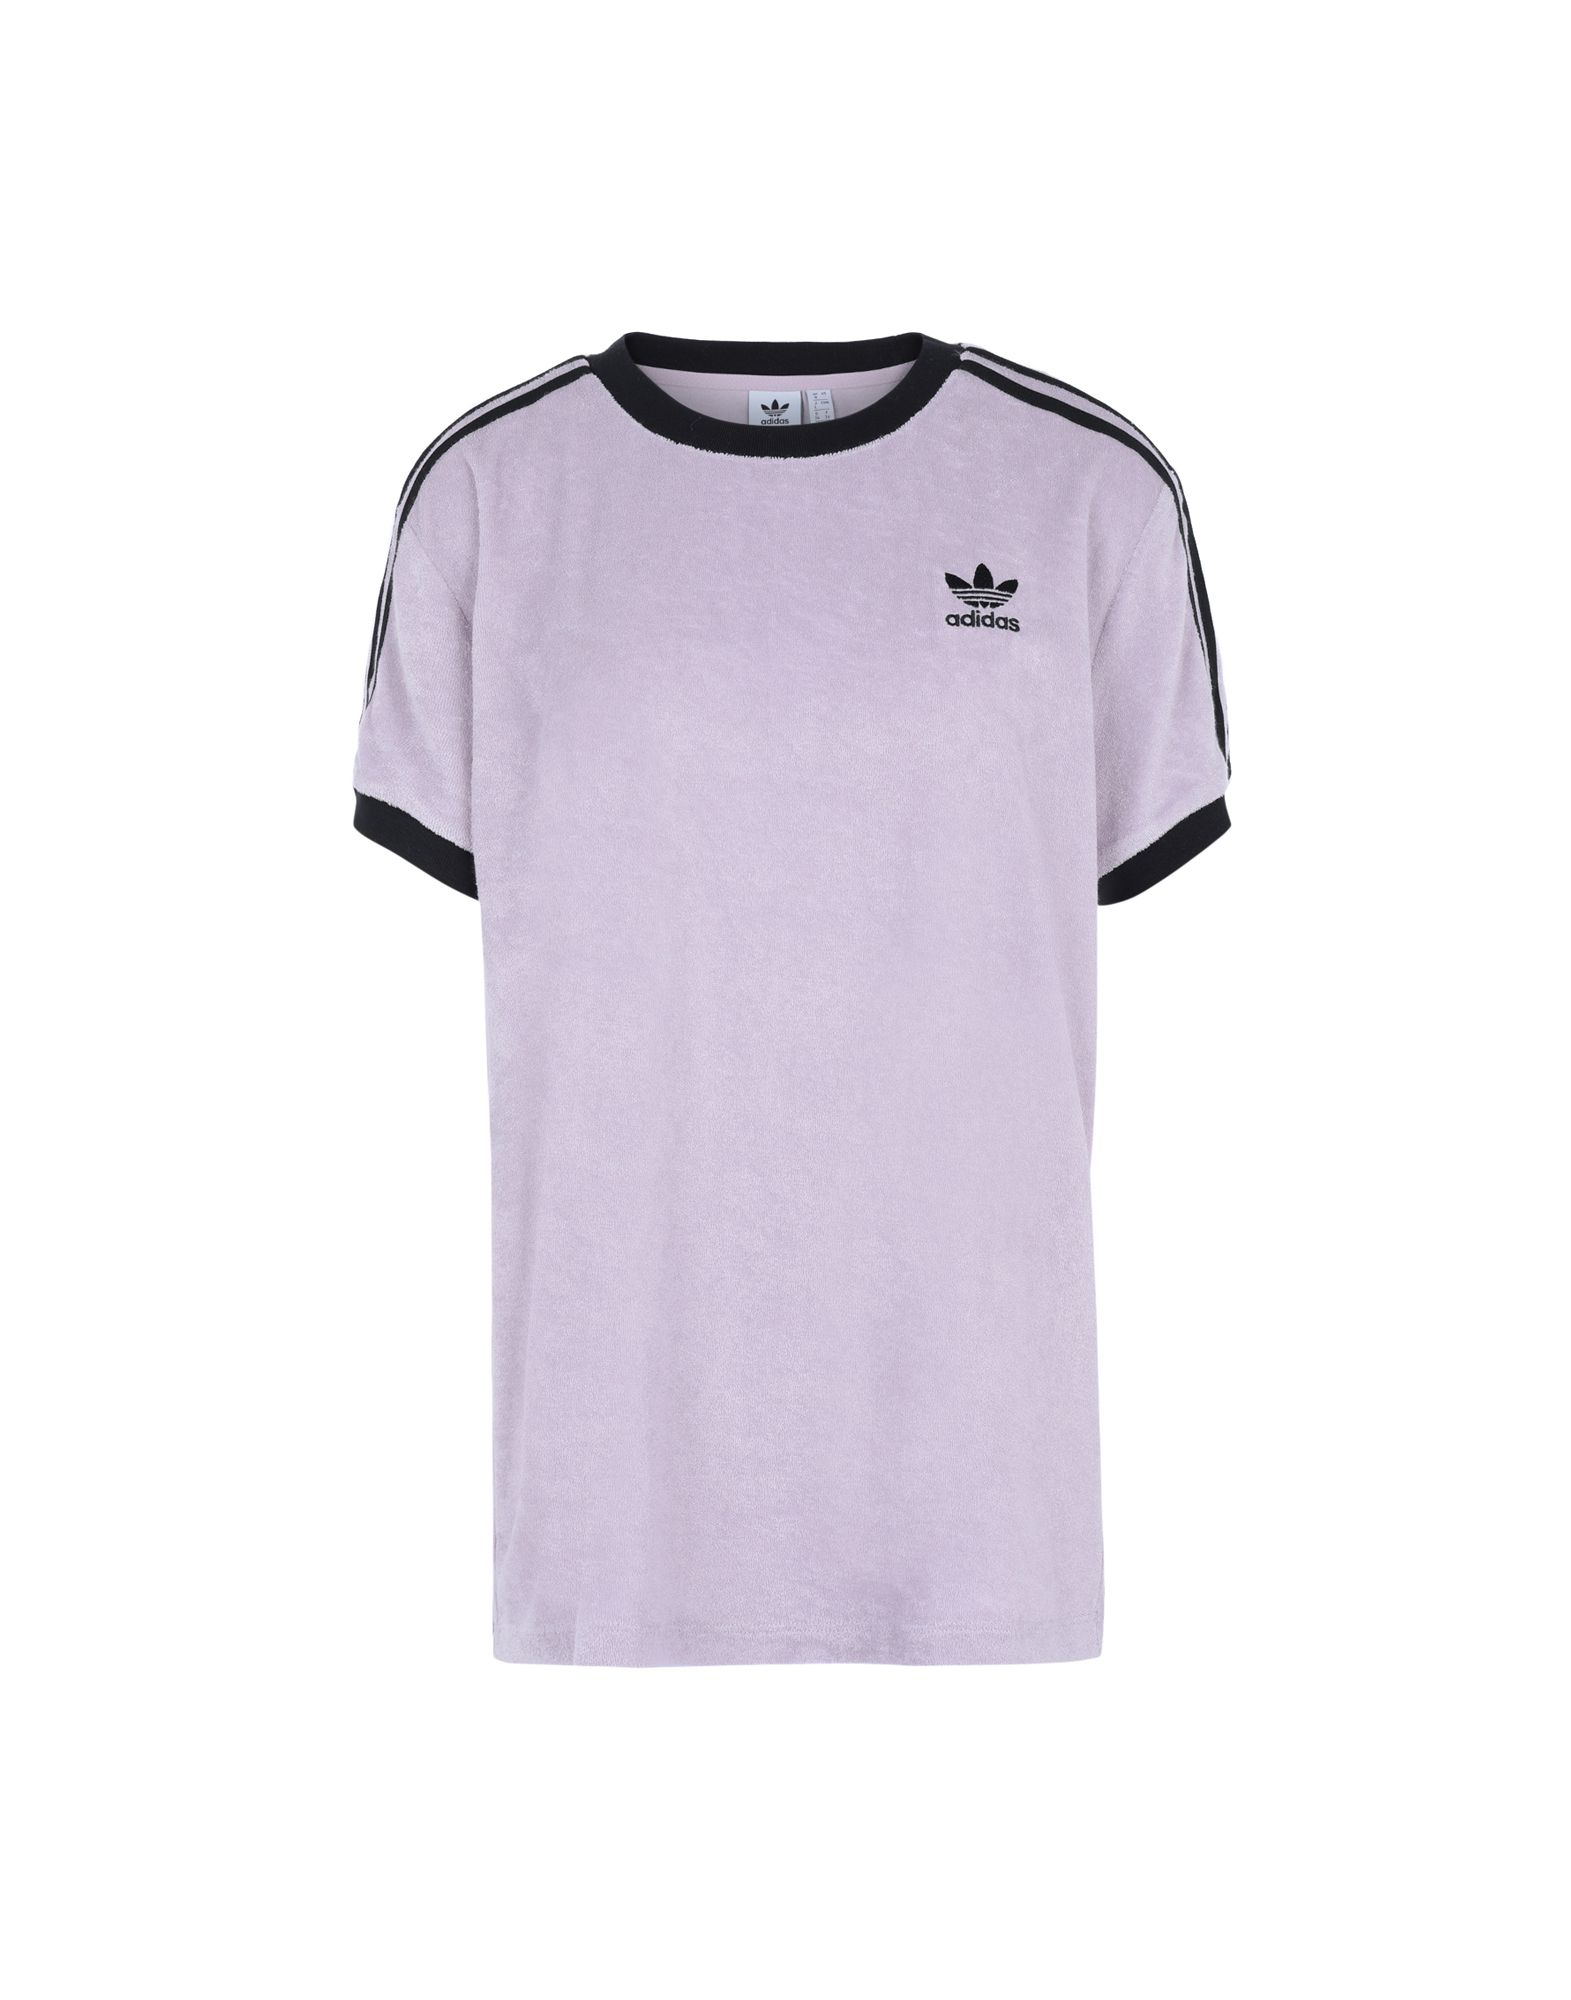 Bra E Top Performance Adidas Originals 3 Stripes Tee - damen - 12296843ET